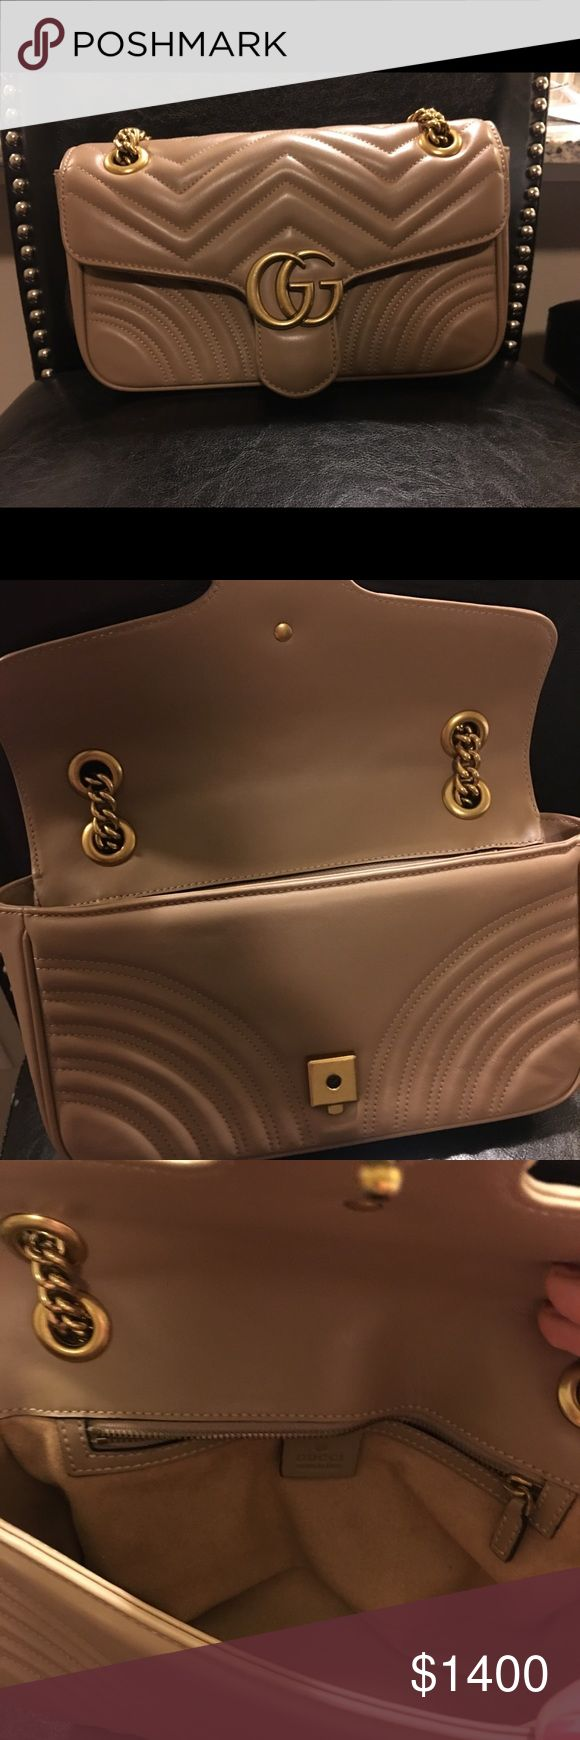 Gucci Marmont Metalesse small nude purse Used almost no signs of wear on the exterior, interior has a small discoloration spot due to cleaning product. Great condition. Gucci Bags Shoulder Bags